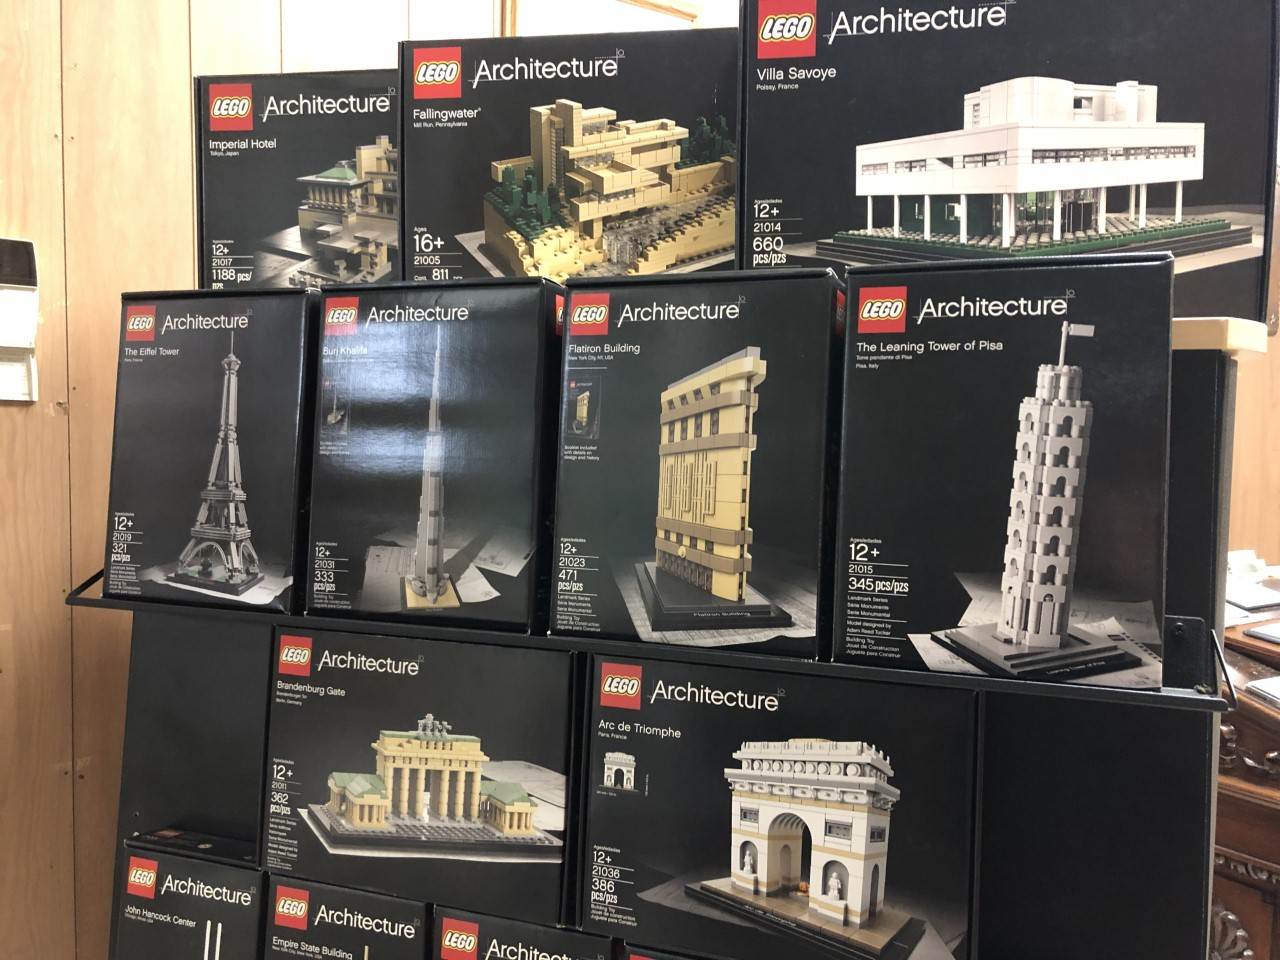 The LEGO display